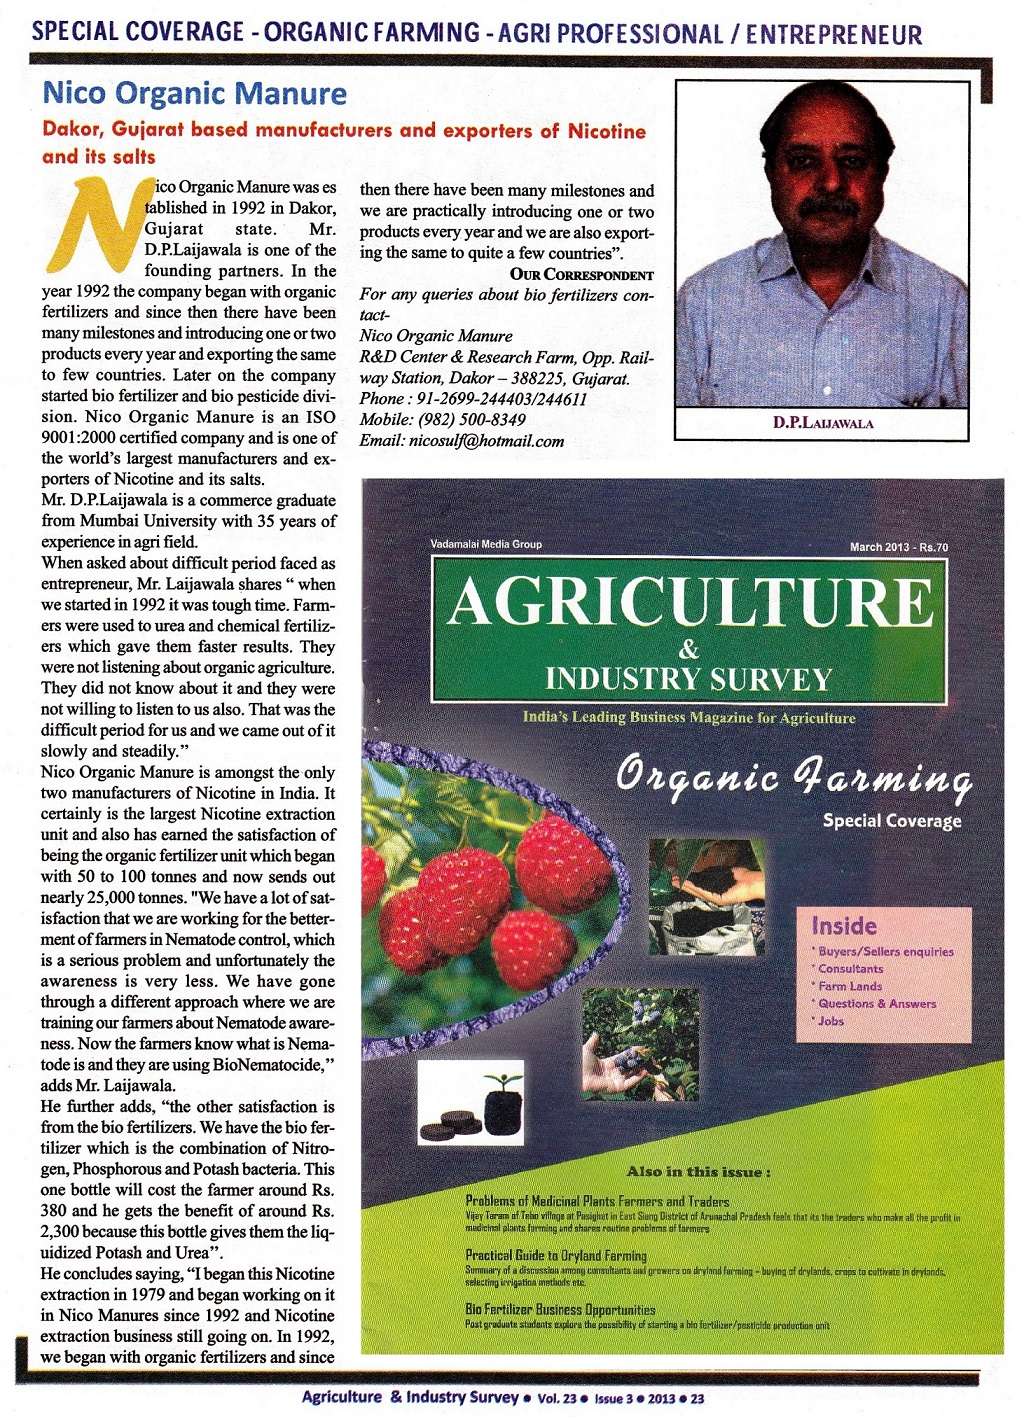 Nico Orgo's Dushyant Laijawala featured in India's largest Agri-business magazine